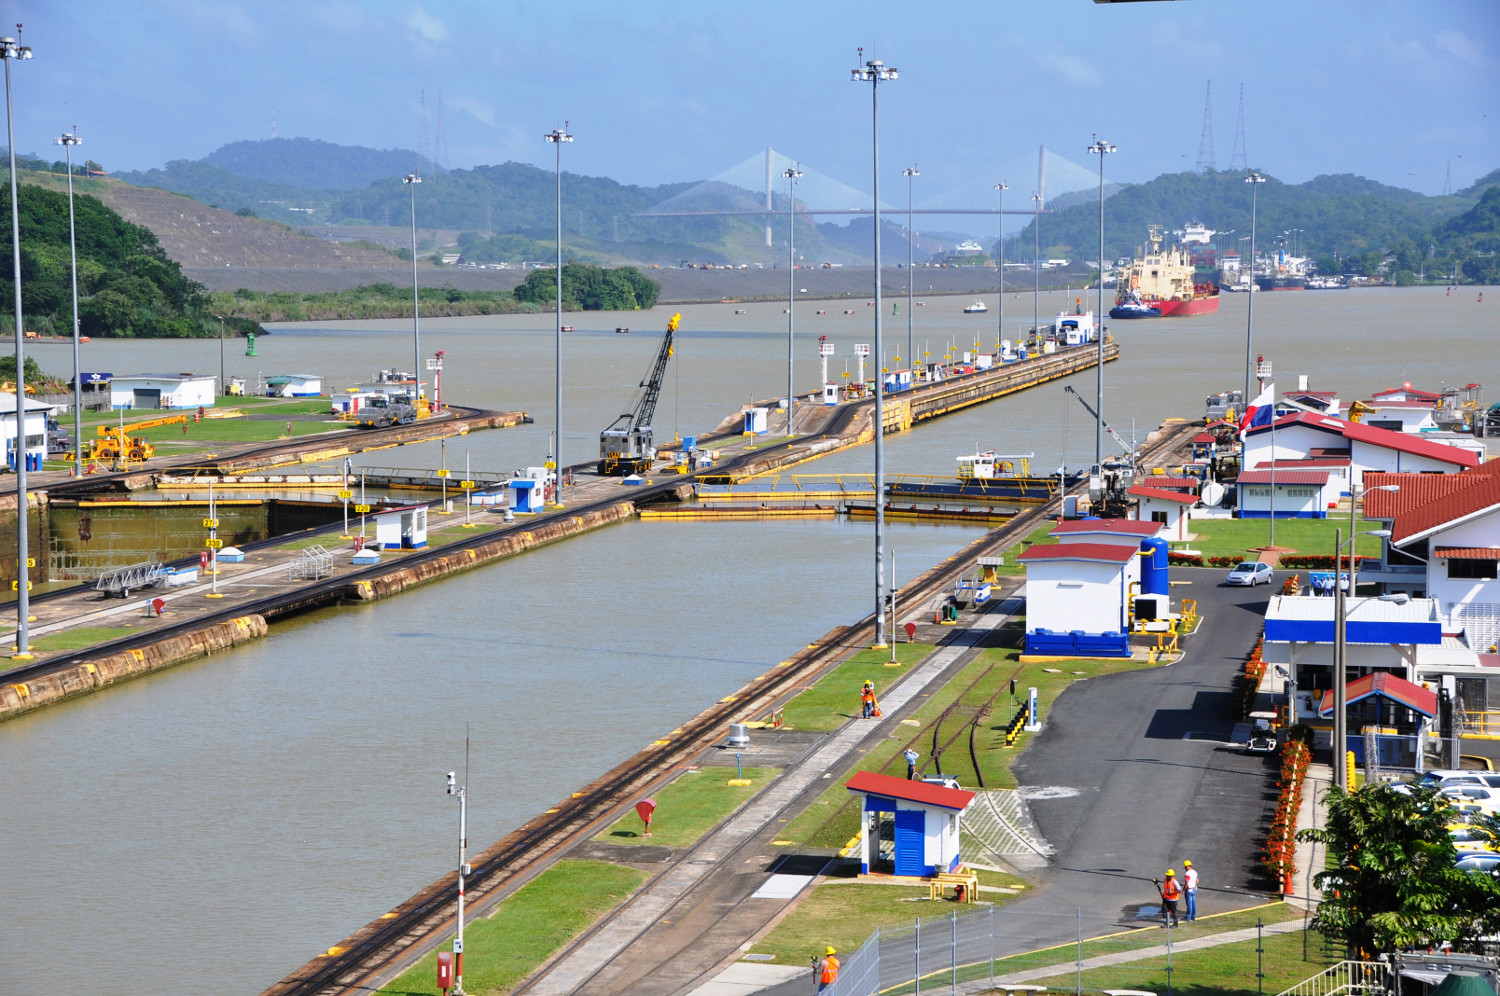 Faszinierendes Bauwunder: der Panama Kanal und seine Schleusen | A fascinating wonder of engineering: the Panama Canal and its locks